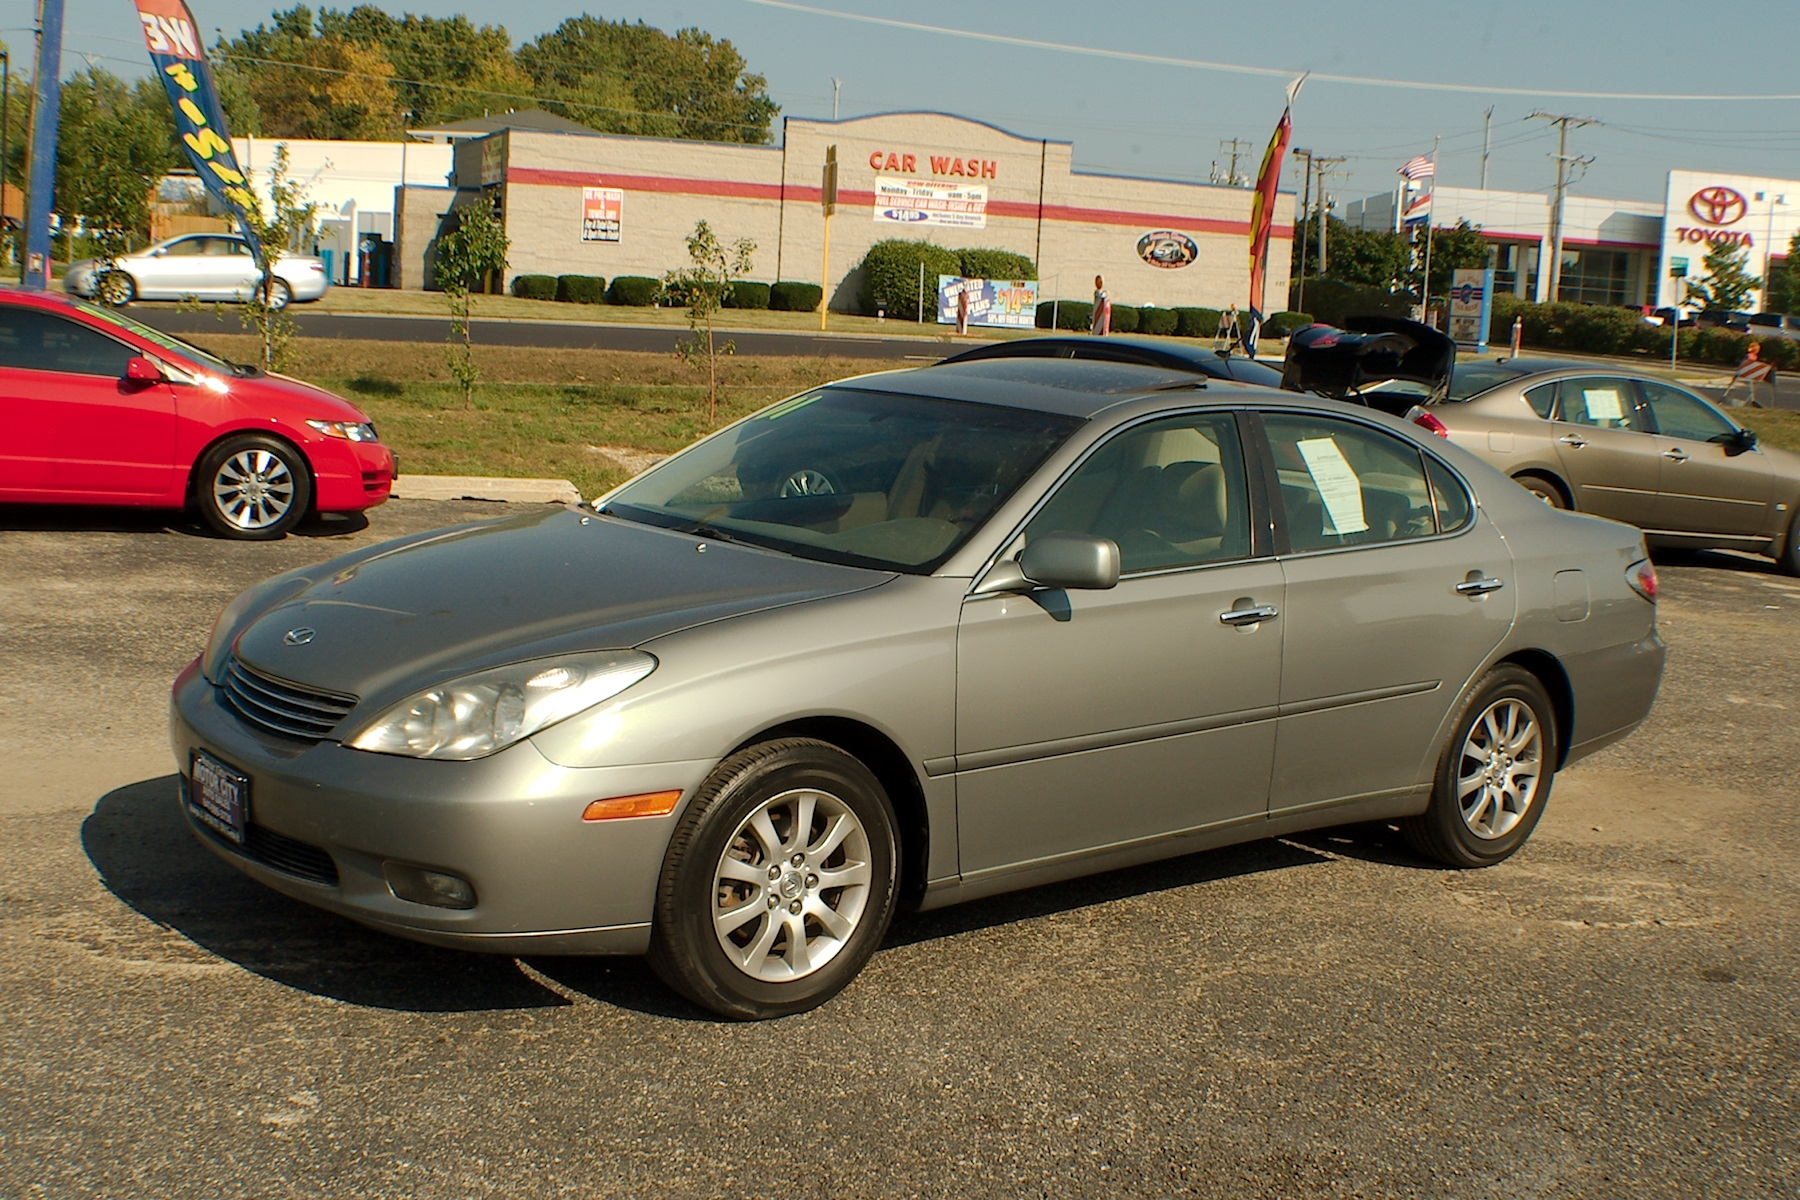 2002 lexus es300 green sedan used car sale. Black Bedroom Furniture Sets. Home Design Ideas